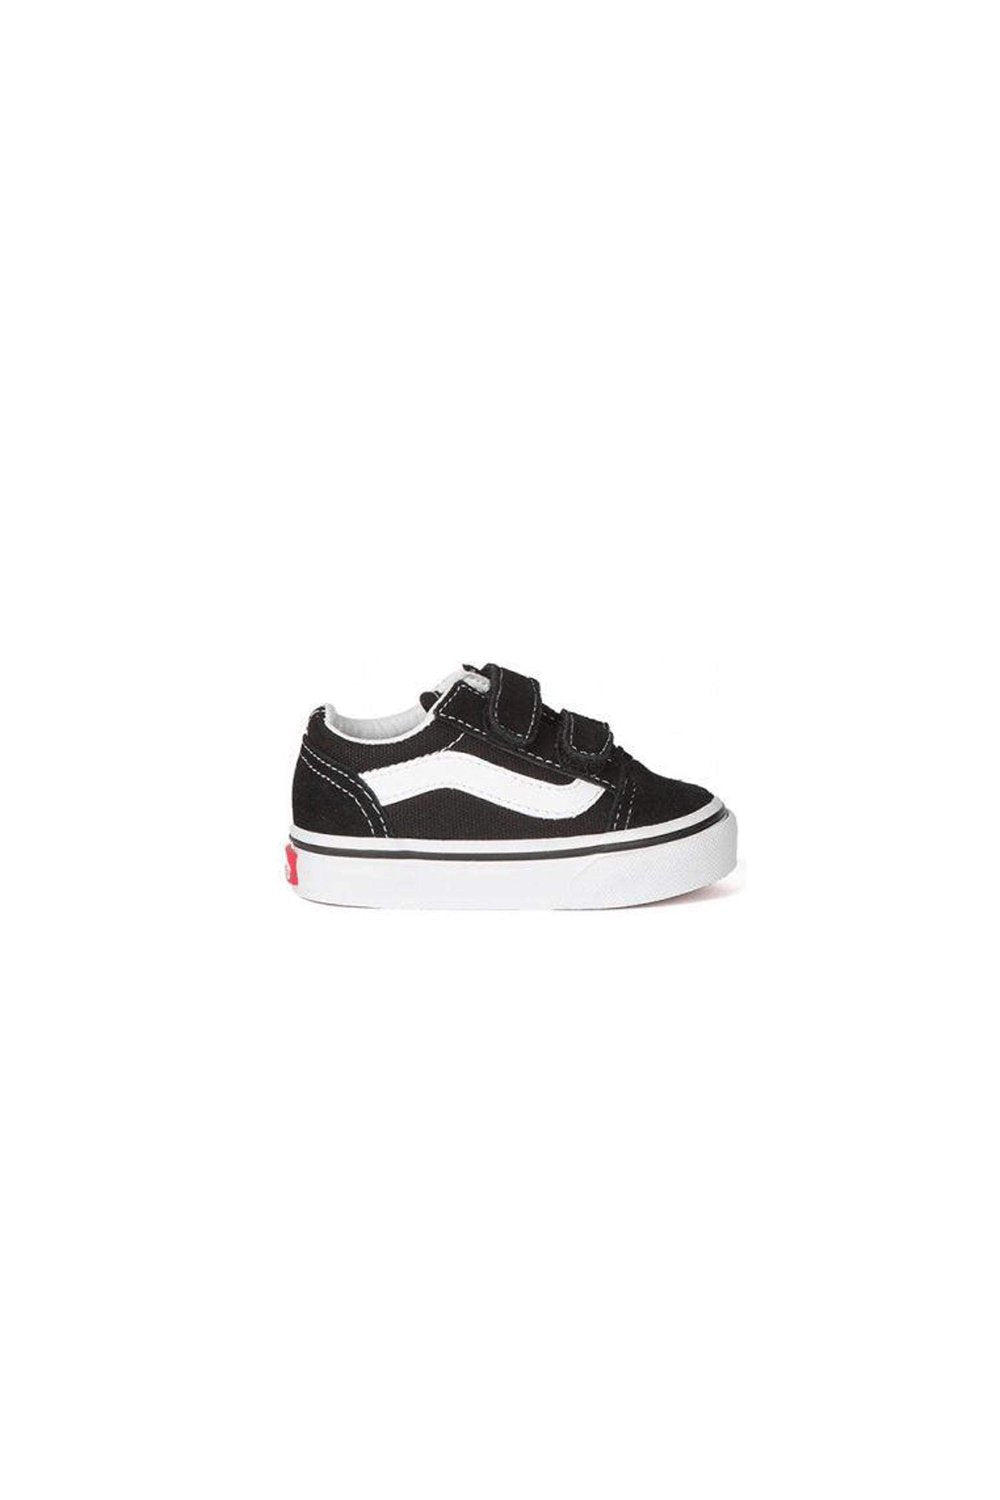 Vans Old Skool V Toddler Black / True White Shoe